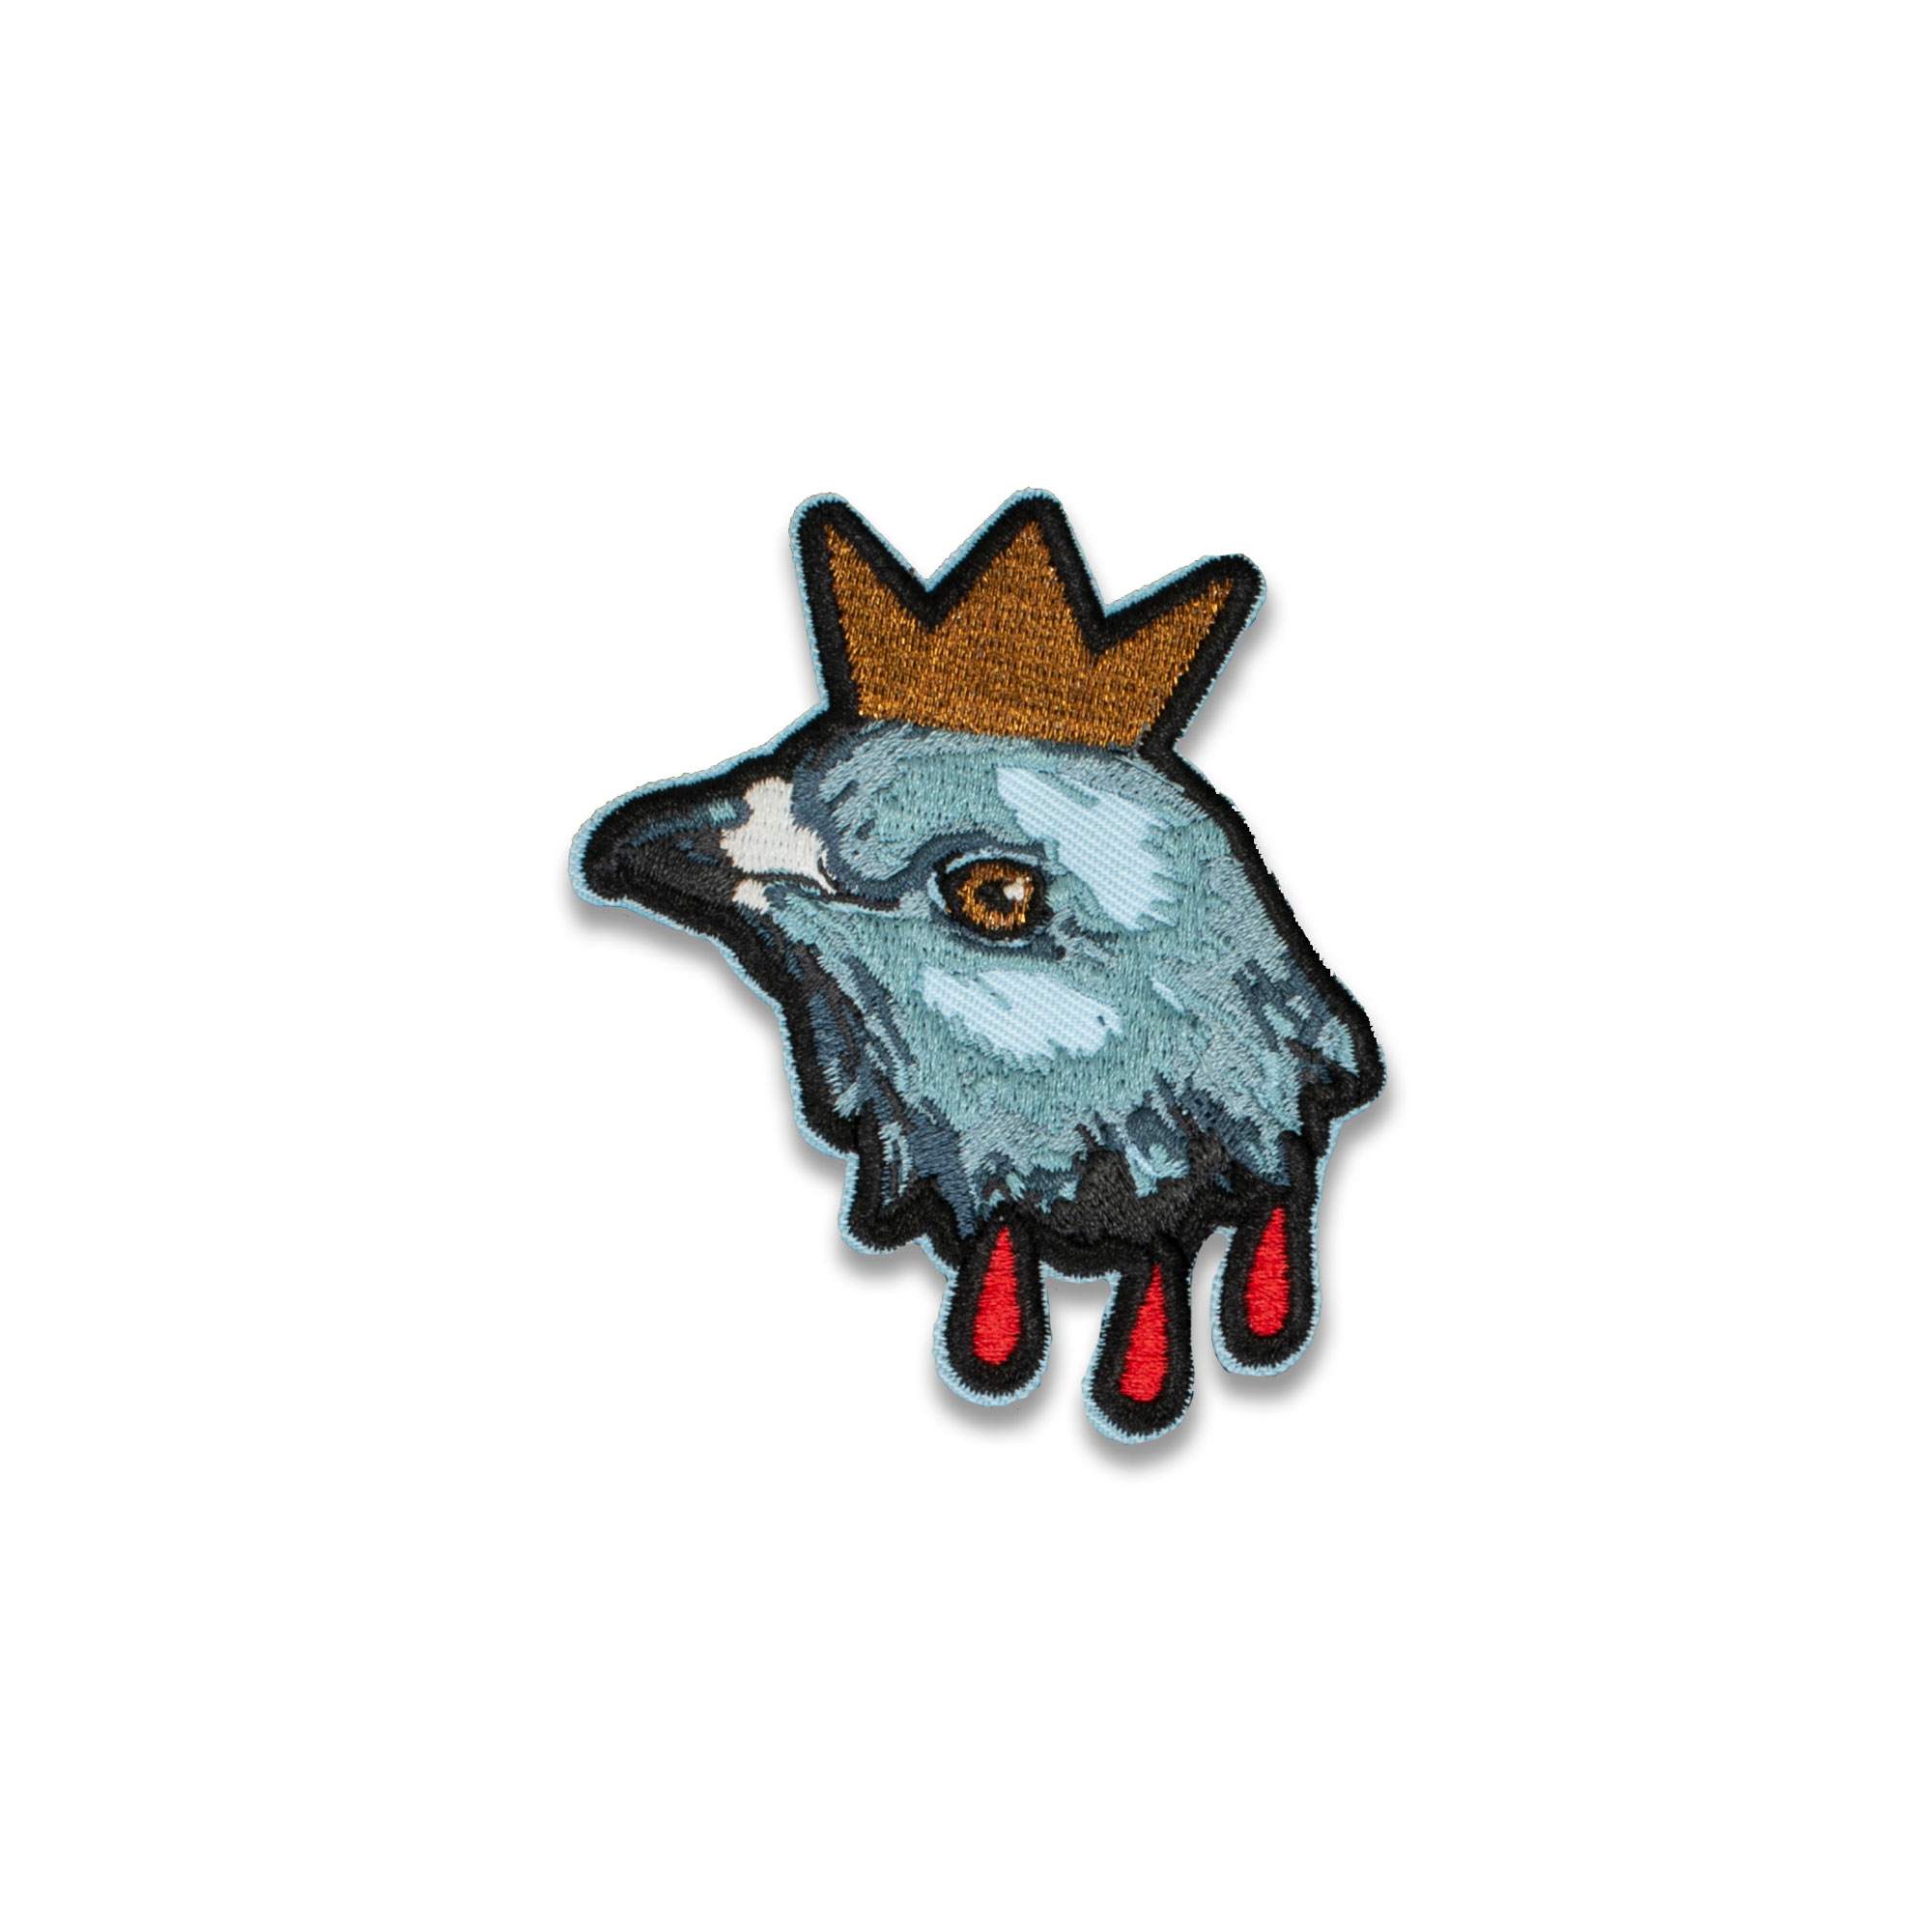 Hereditary Inspired Pigeon King Paimon Embroidered Patch at Bad Attitude Dept